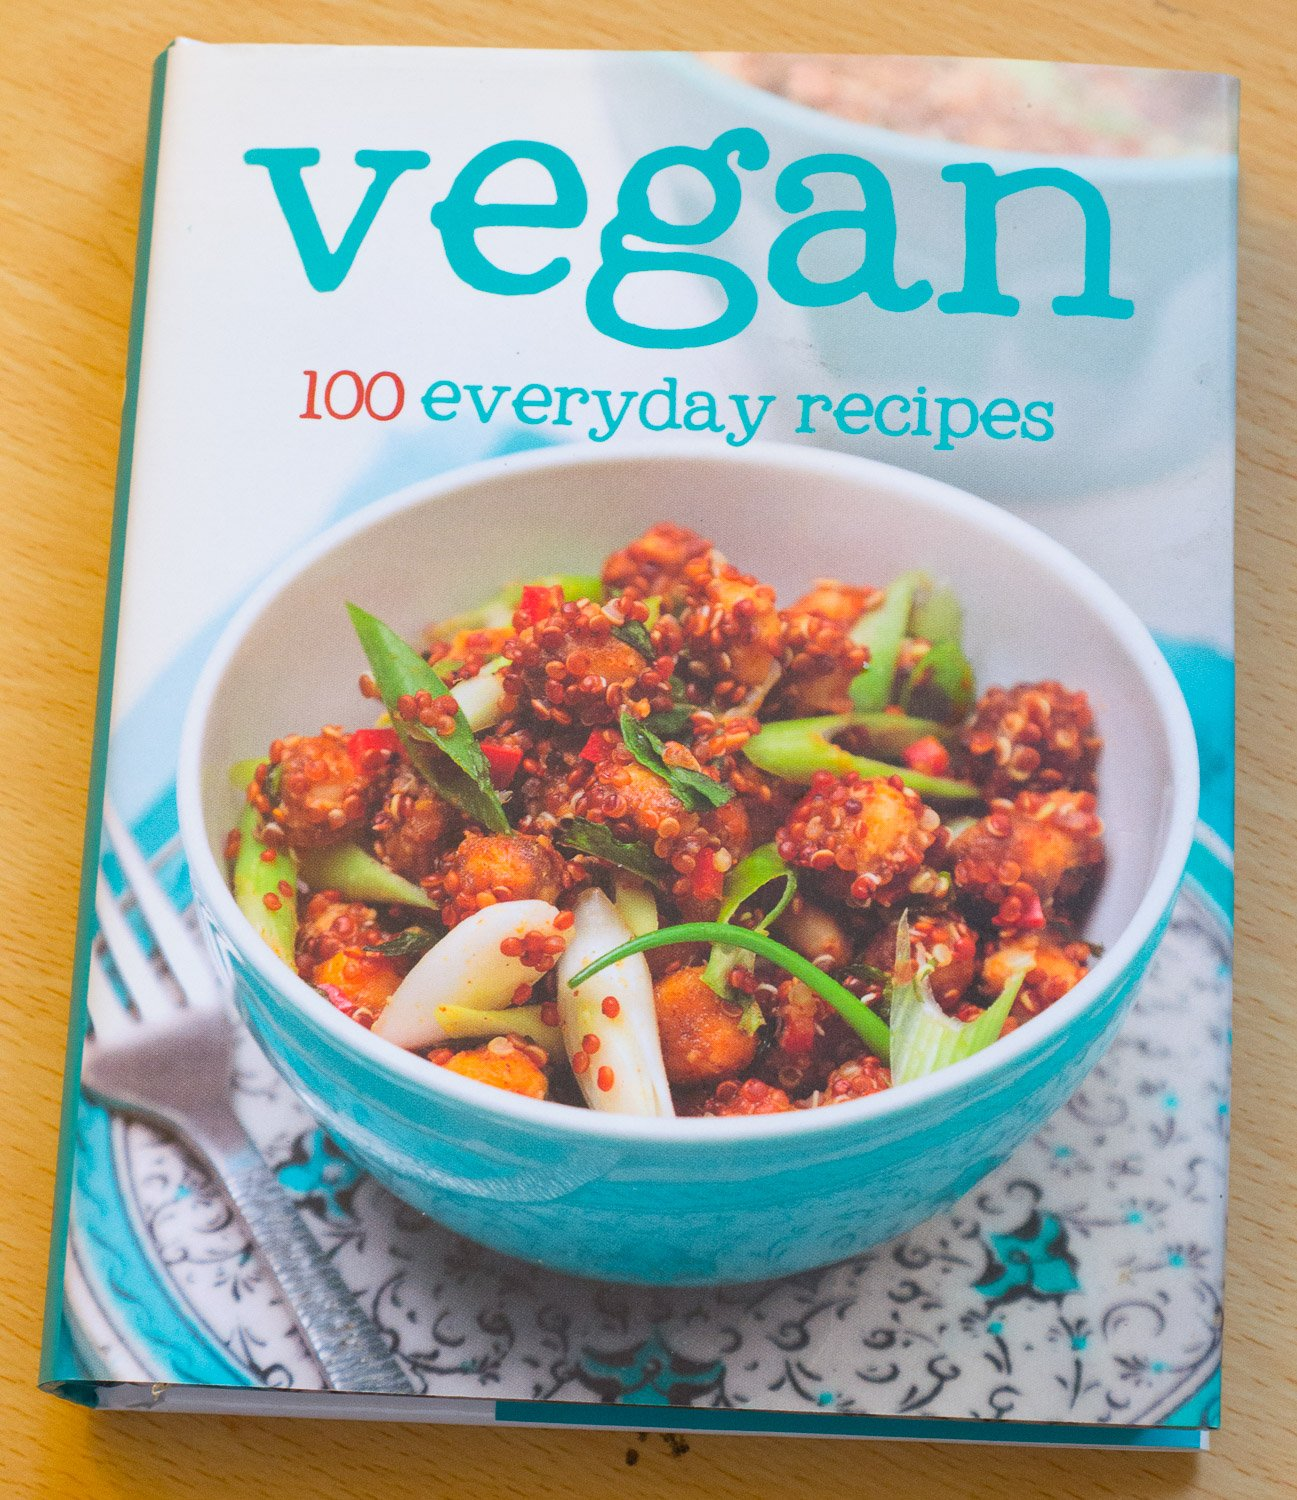 Vegan 100 Everyday Recipes from The Works